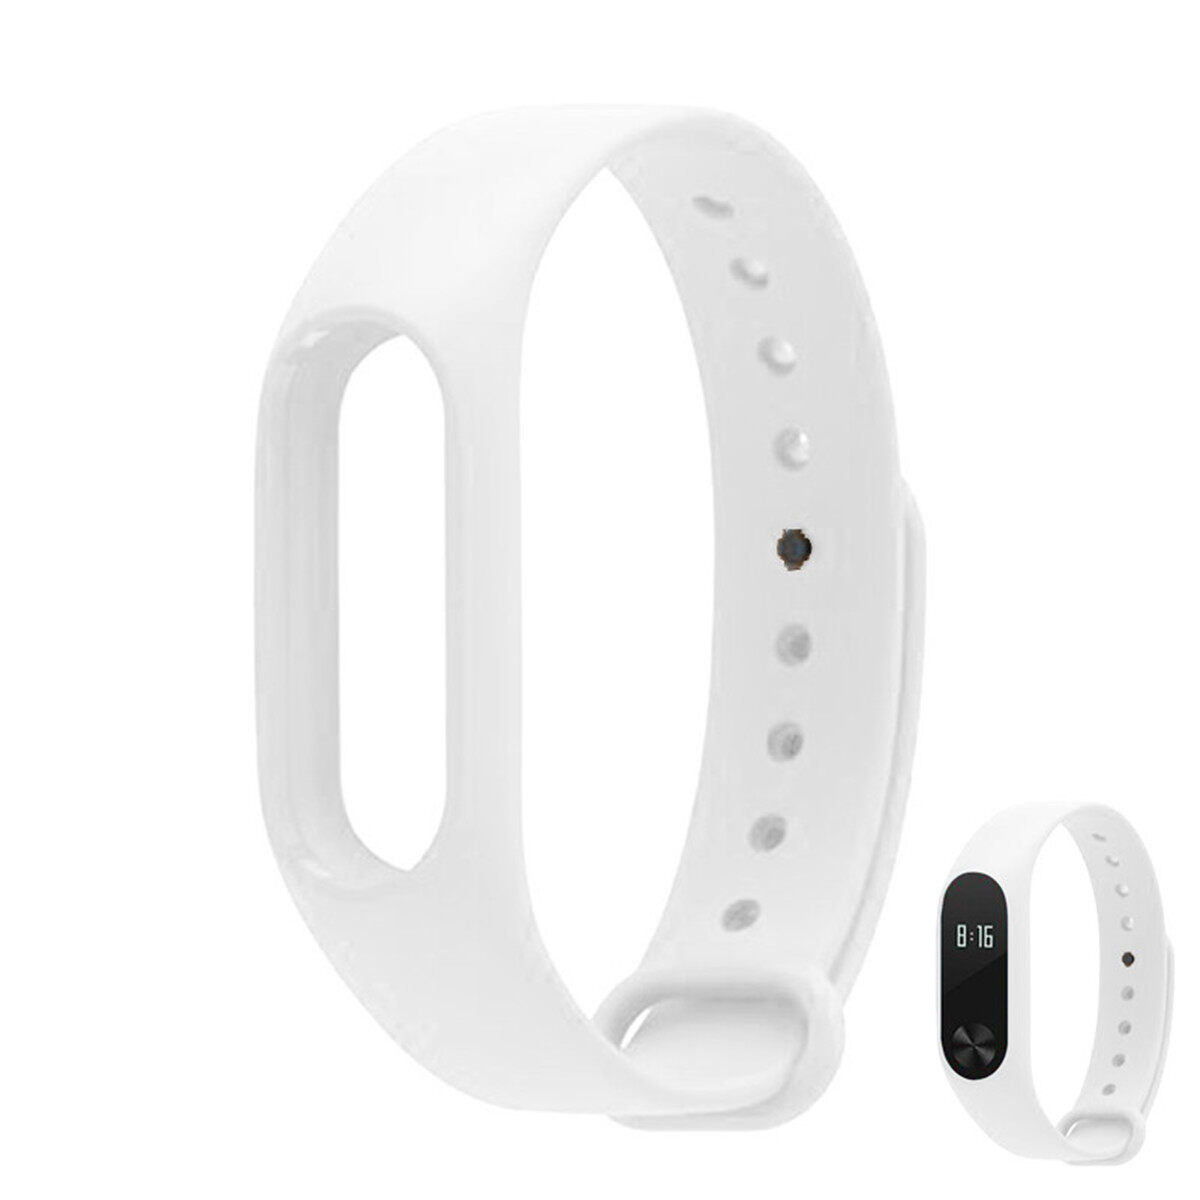 Replacement TPU Wrist Band for Xiaomi MI Band 2 - White - intl